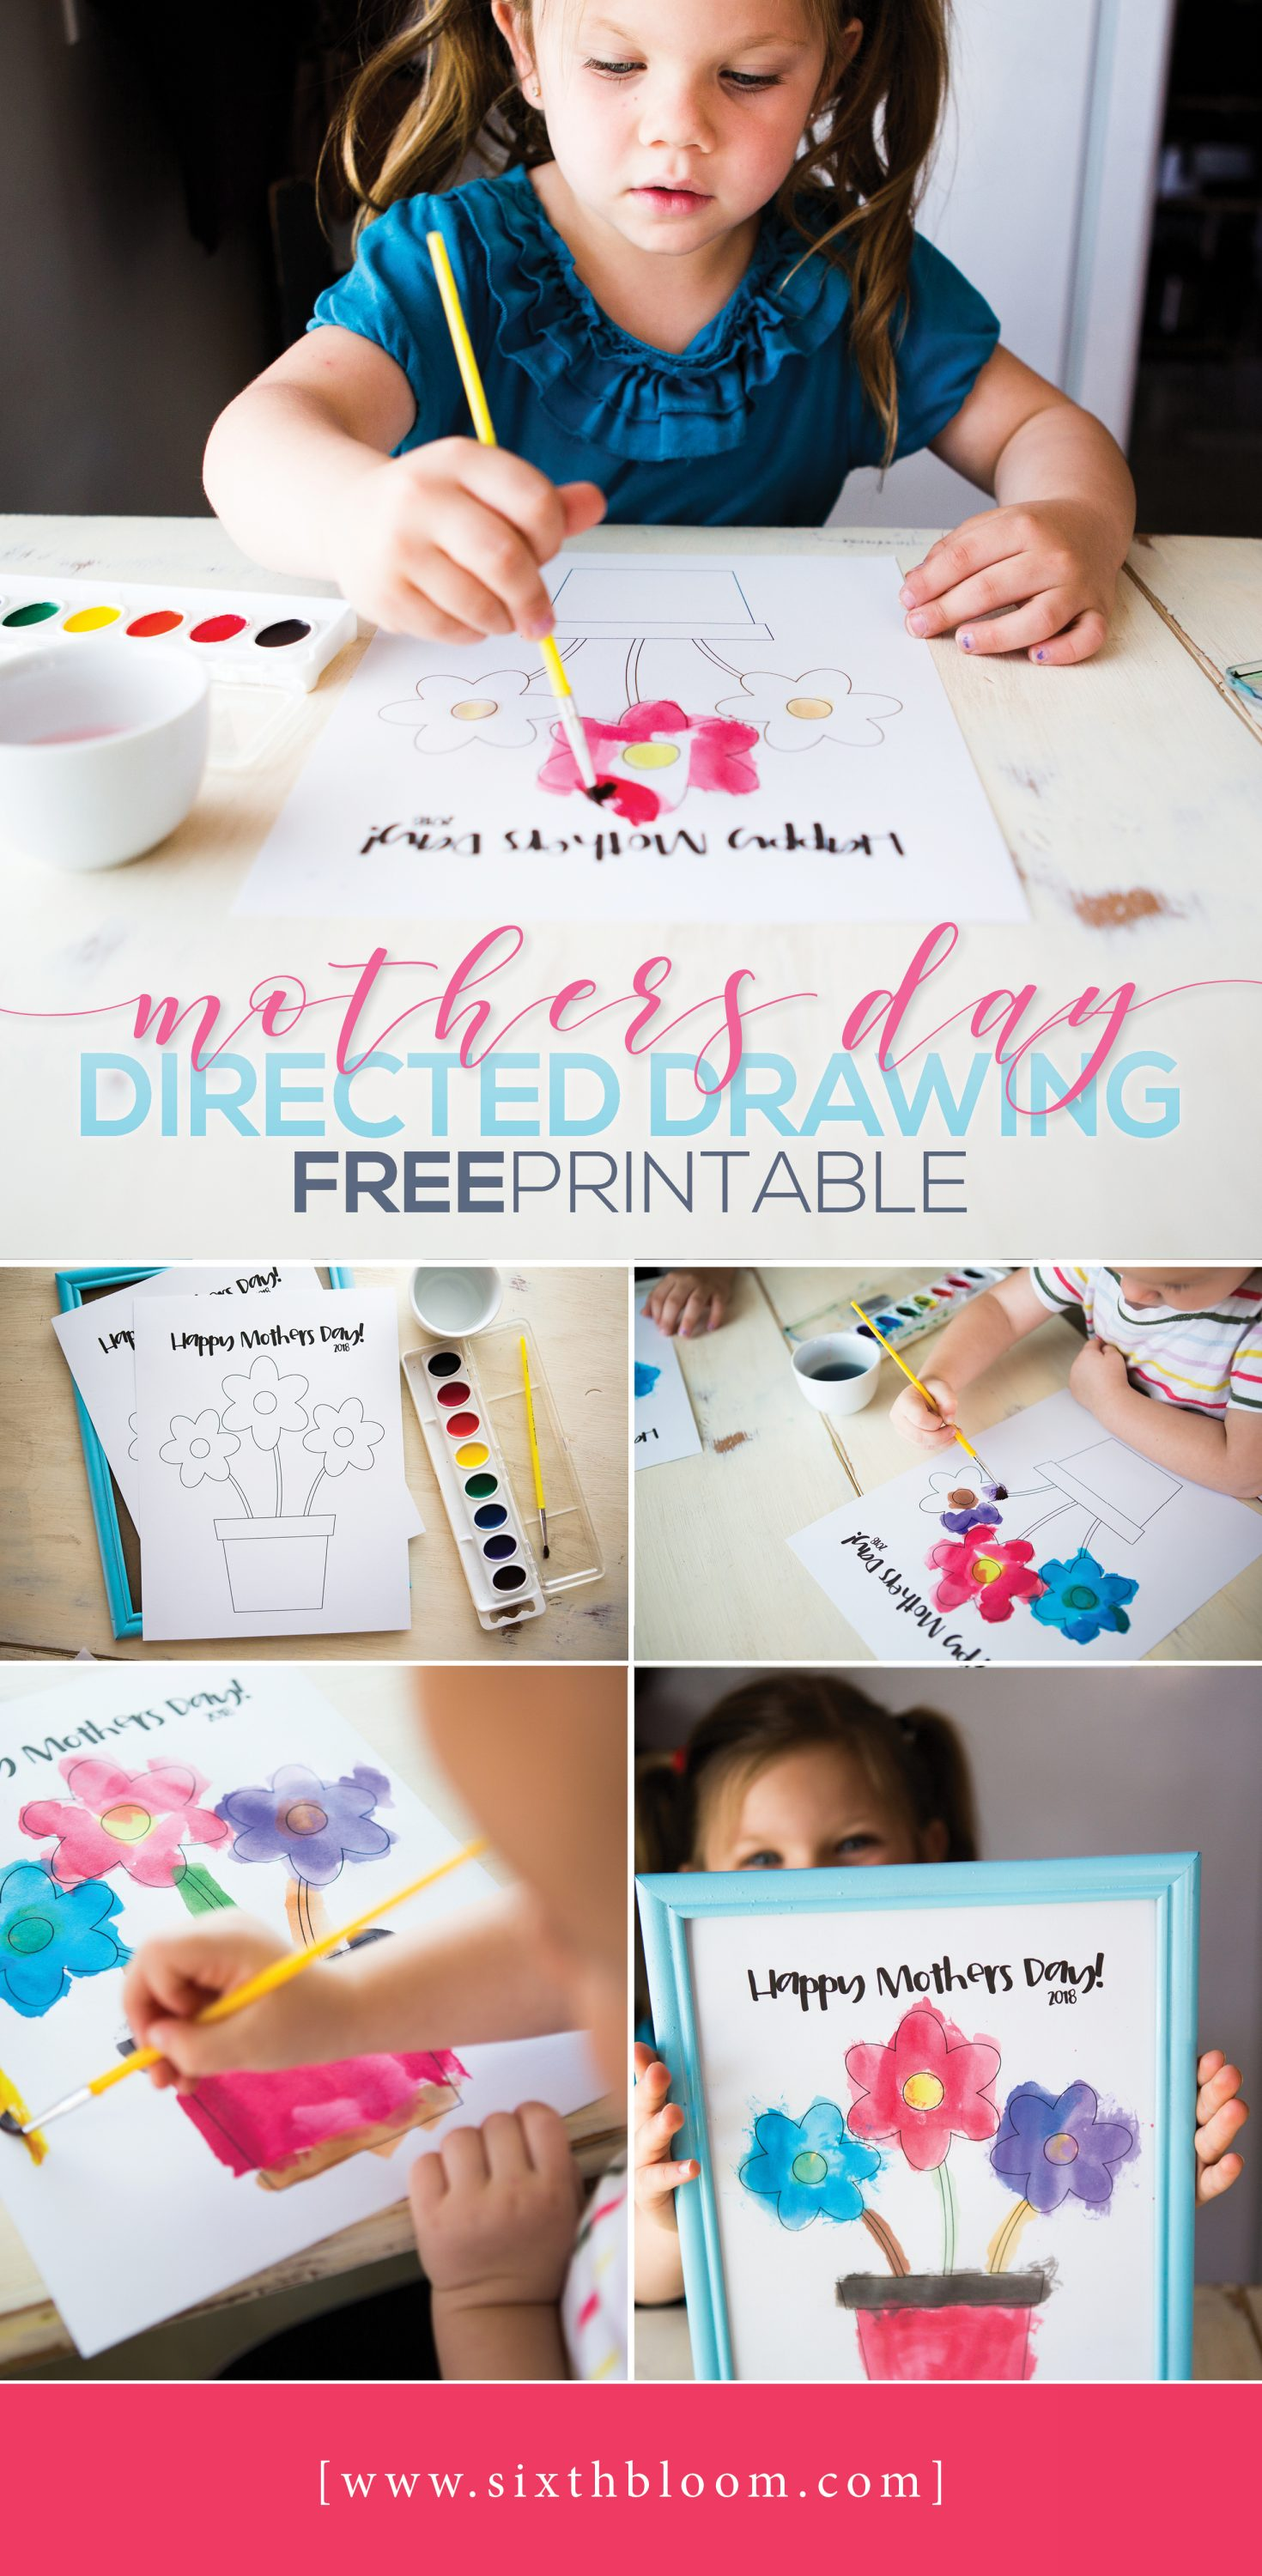 Mothers Day Directed Drawing, STEAM Activities for Preschoolers, #STEMKIDS #STEAM #STEM #Preschool #preschooler #preschoollearning #Directeddrawing #MothersDay #HandmadeMothersDay #MothersDayCraft